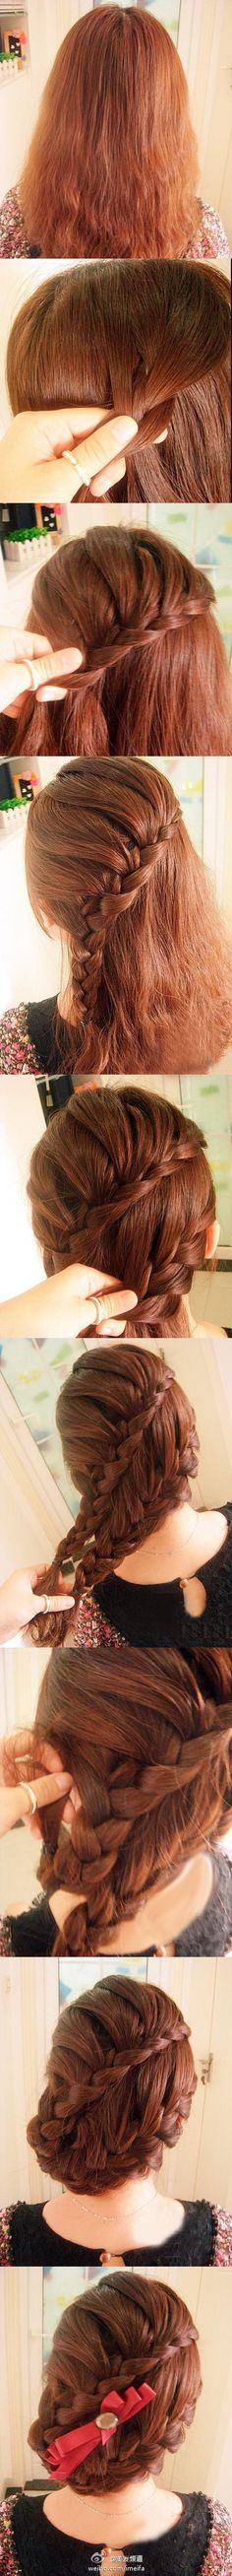 Double diagonal braid